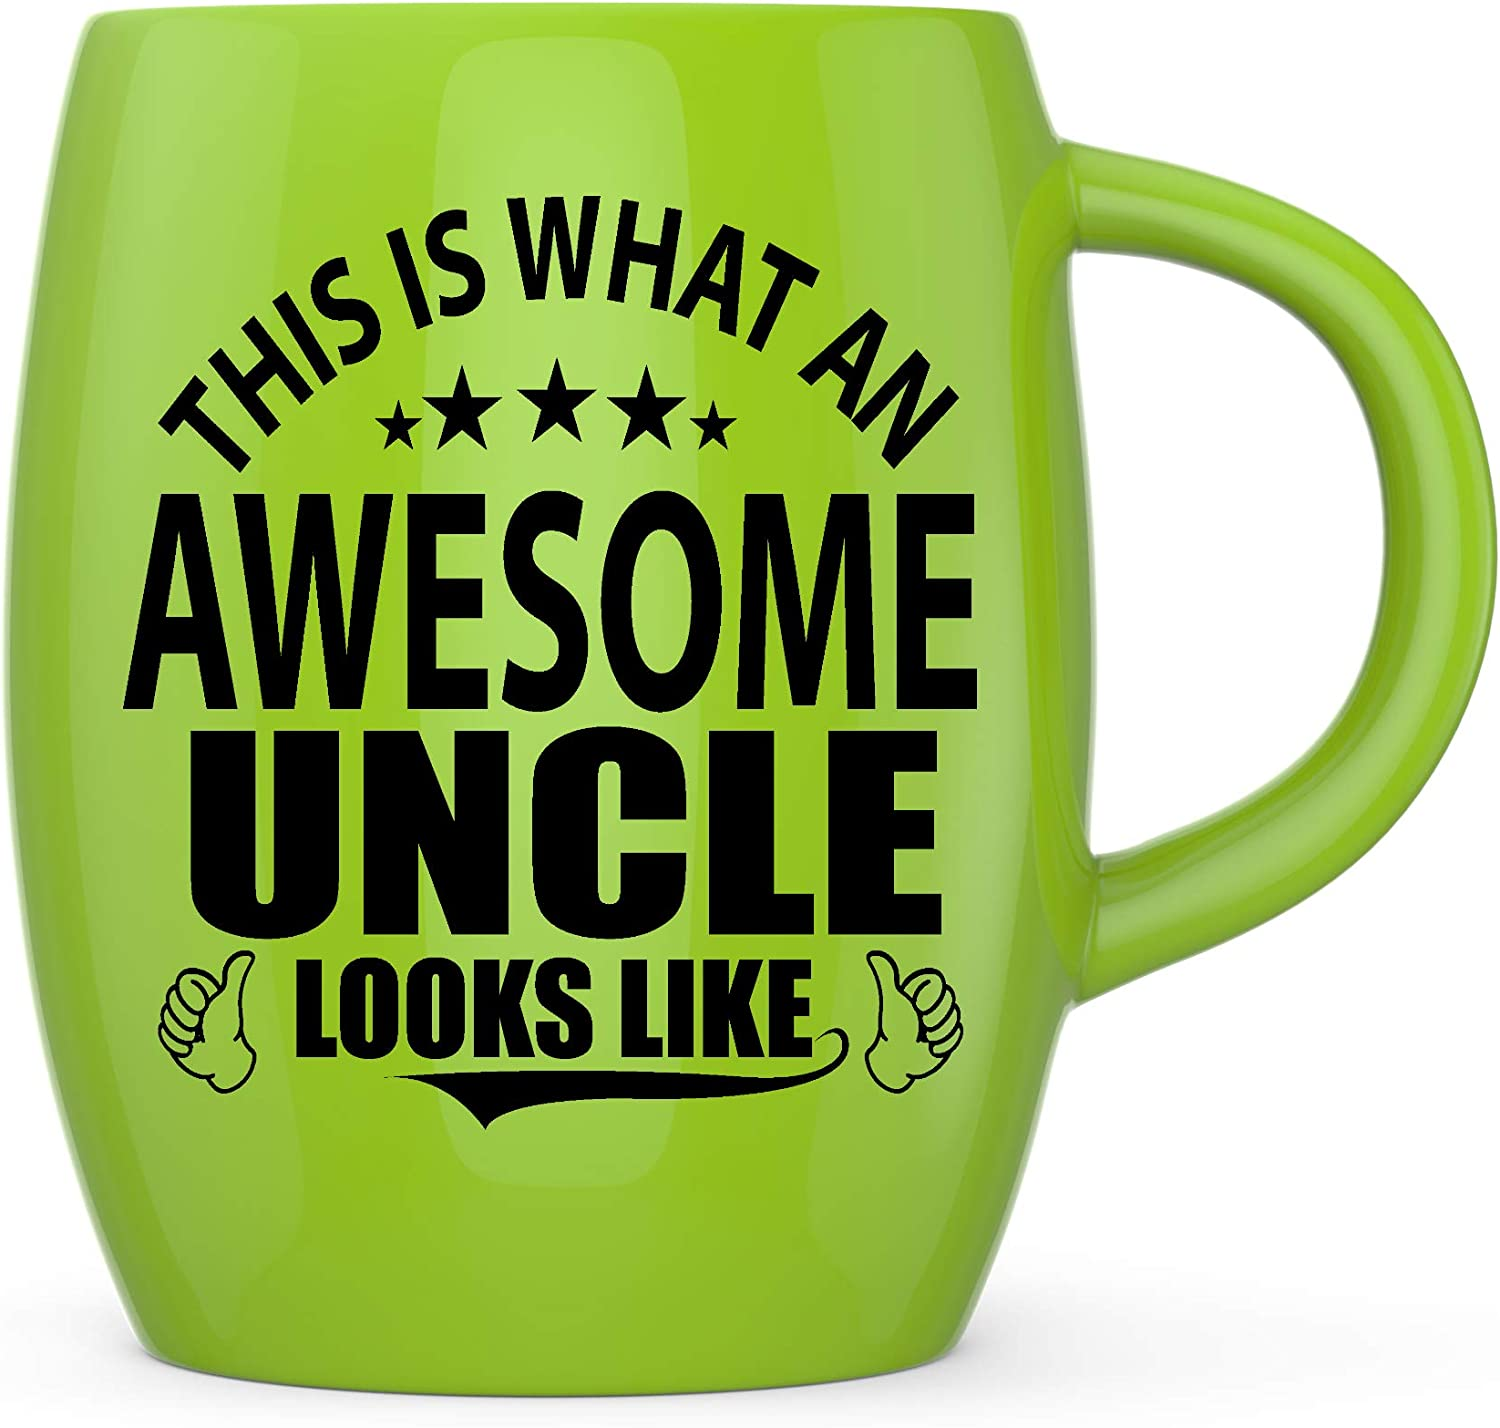 Father's Day Gifts for Uncles from Niece Nephew This Is What An Awesome Uncle Looks Like Funny Gag Gift for Christmas Birthday Ceramic Coffee Mug Tea Cup - Yellow Green